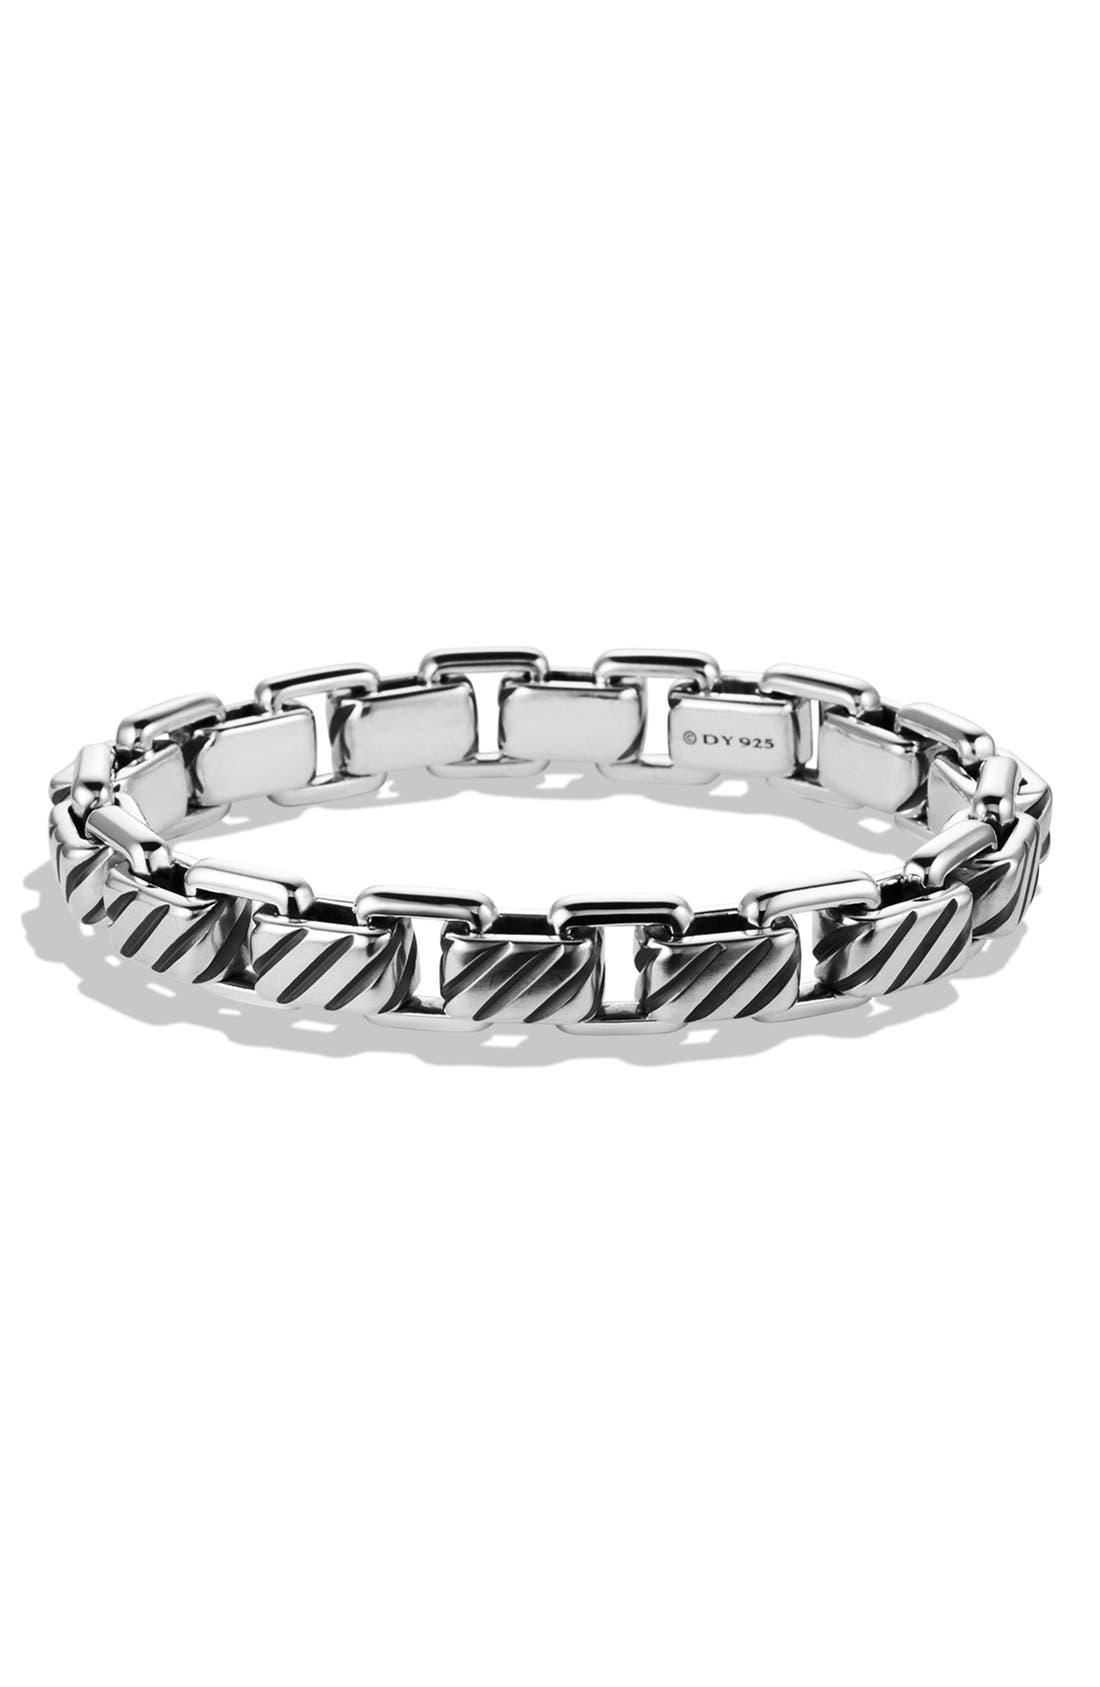 Alternate Image 1 Selected - David Yurman 'Modern Cable' Empire Link Bracelet